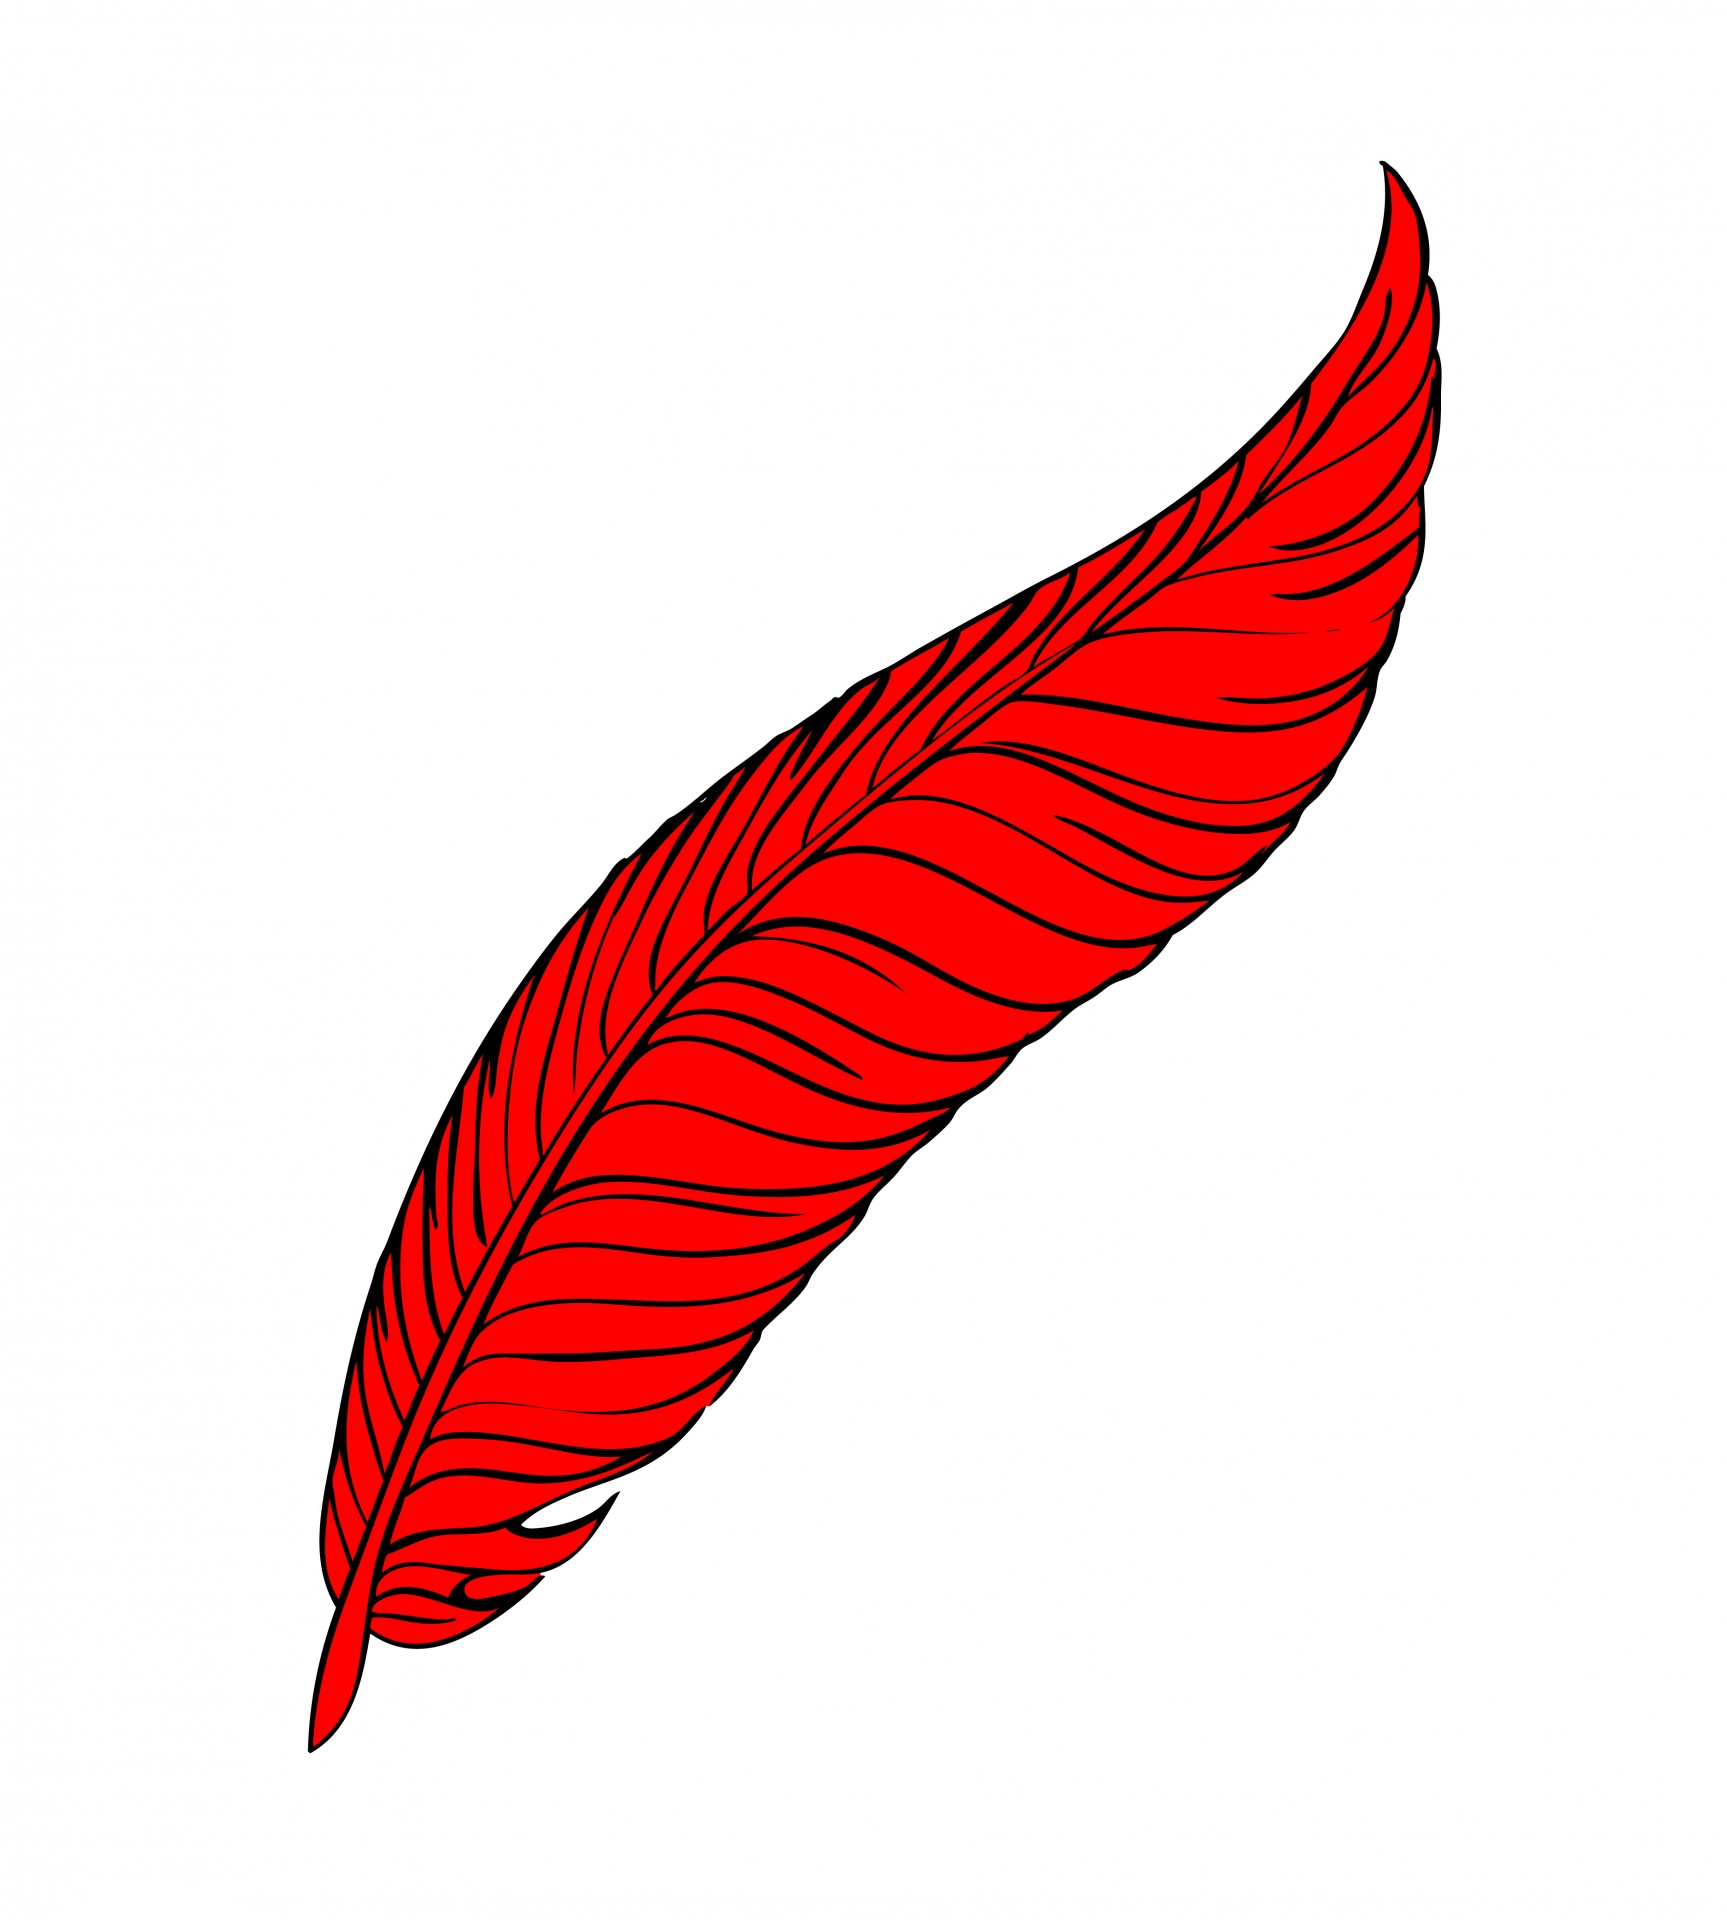 Red Feather Line Art Free Stock Photo.